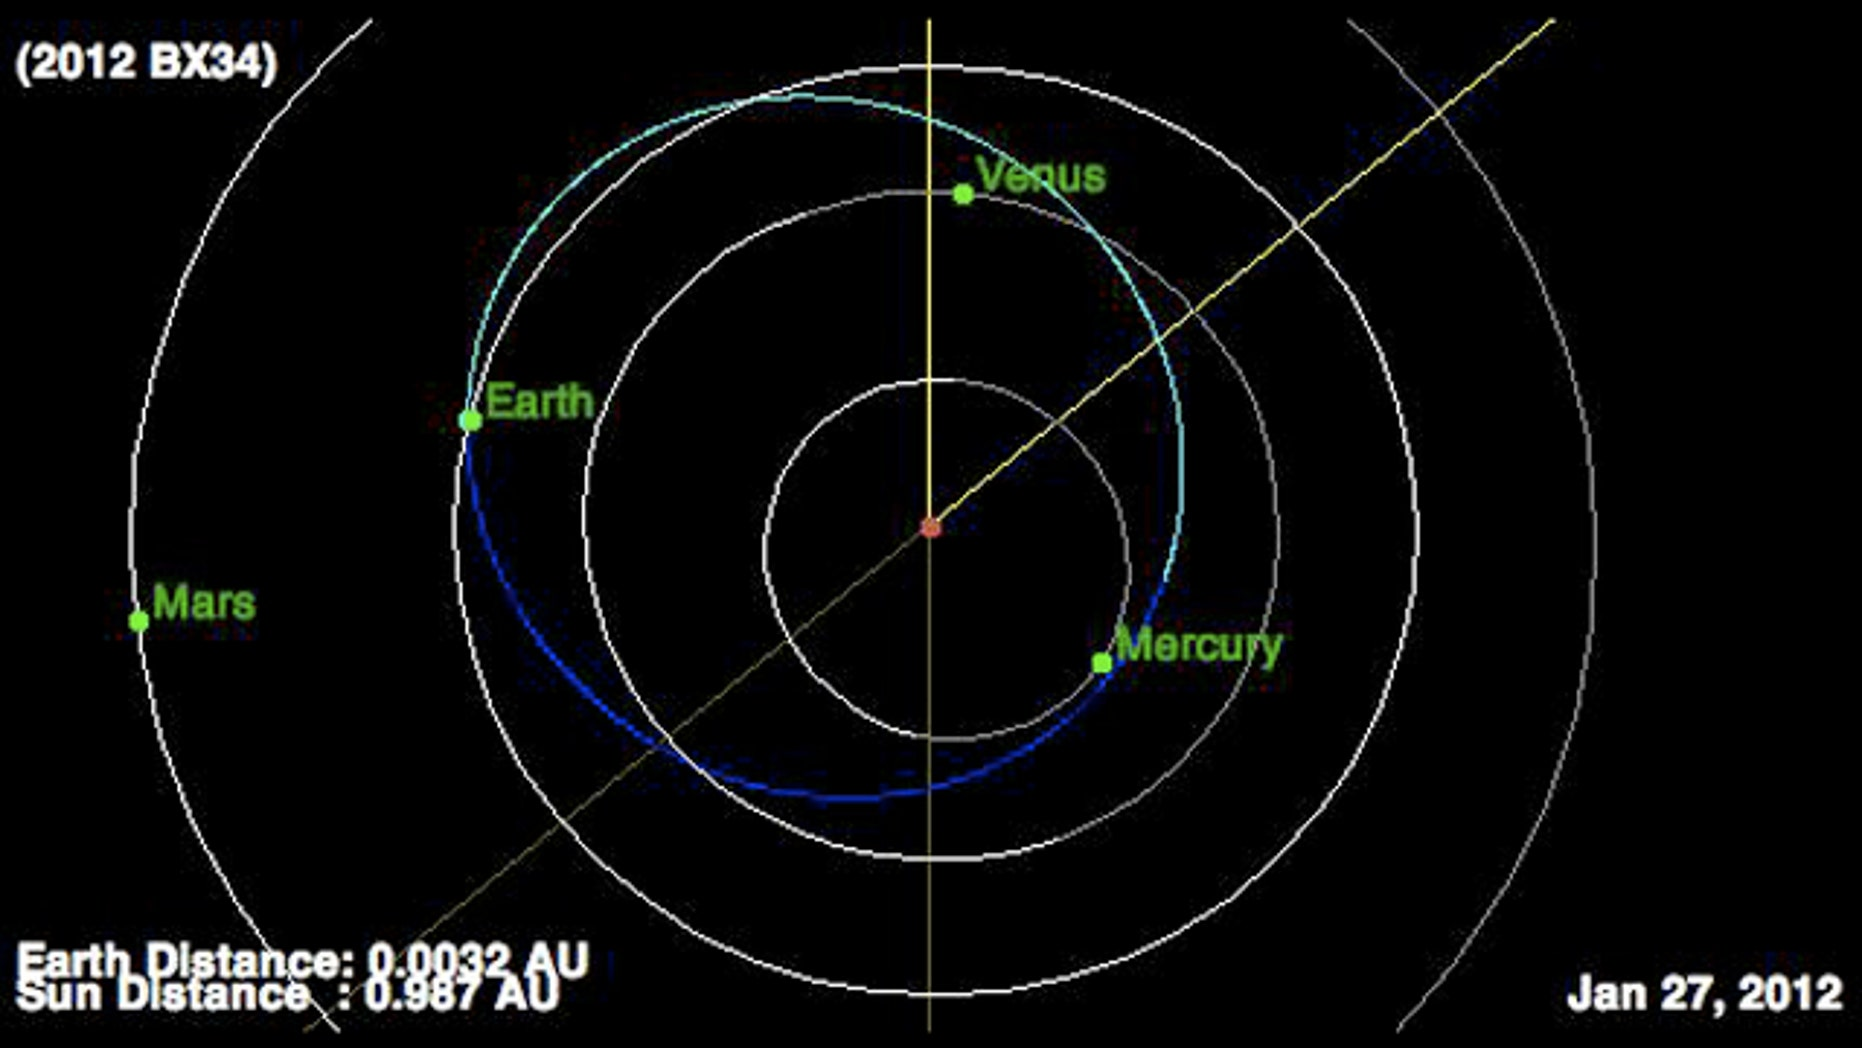 The newly discovered asteroid 2012 BX34 (whose orbit is represented by the blue line) will come within 0.17 lunar distances of Earth on Jan. 27, 2012, experts say.